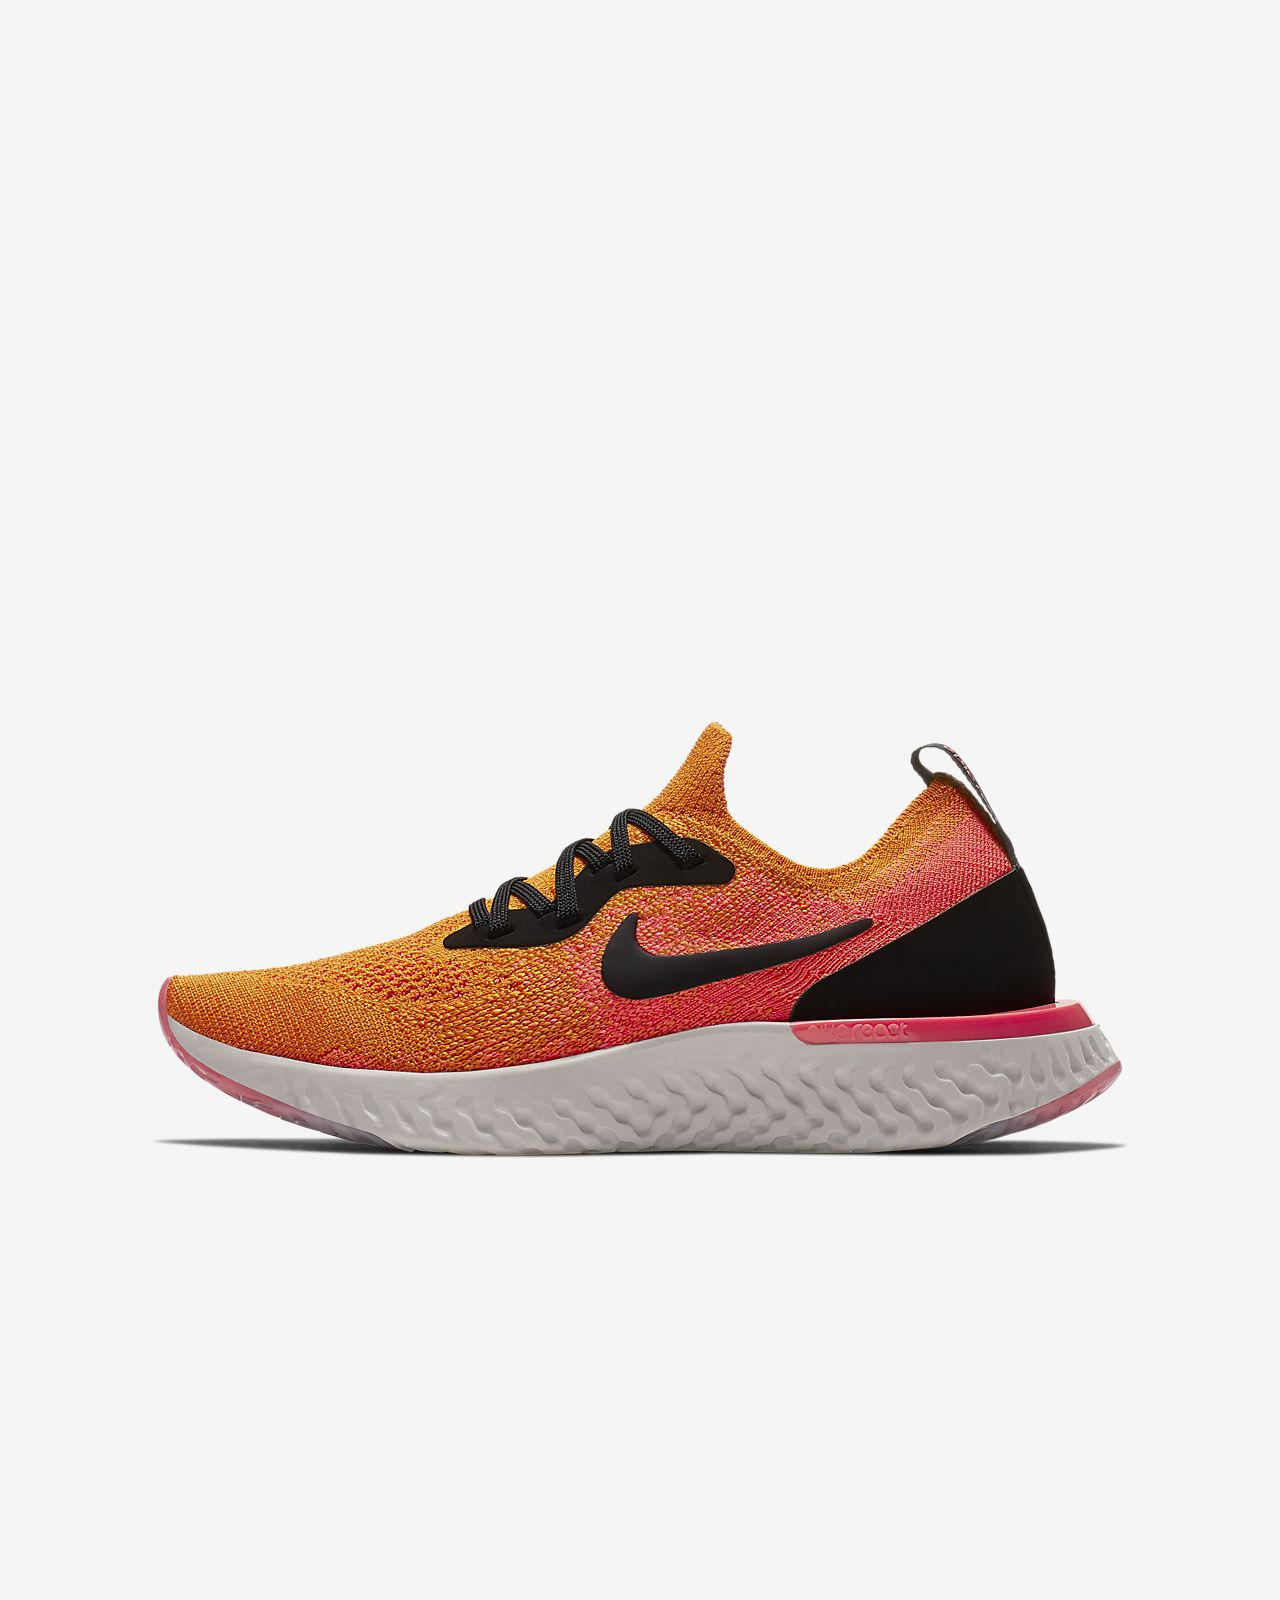 new product 6e68c 4bc03 ... coupon code for nike epic react flyknit big kids running shoe e3d50  2236a